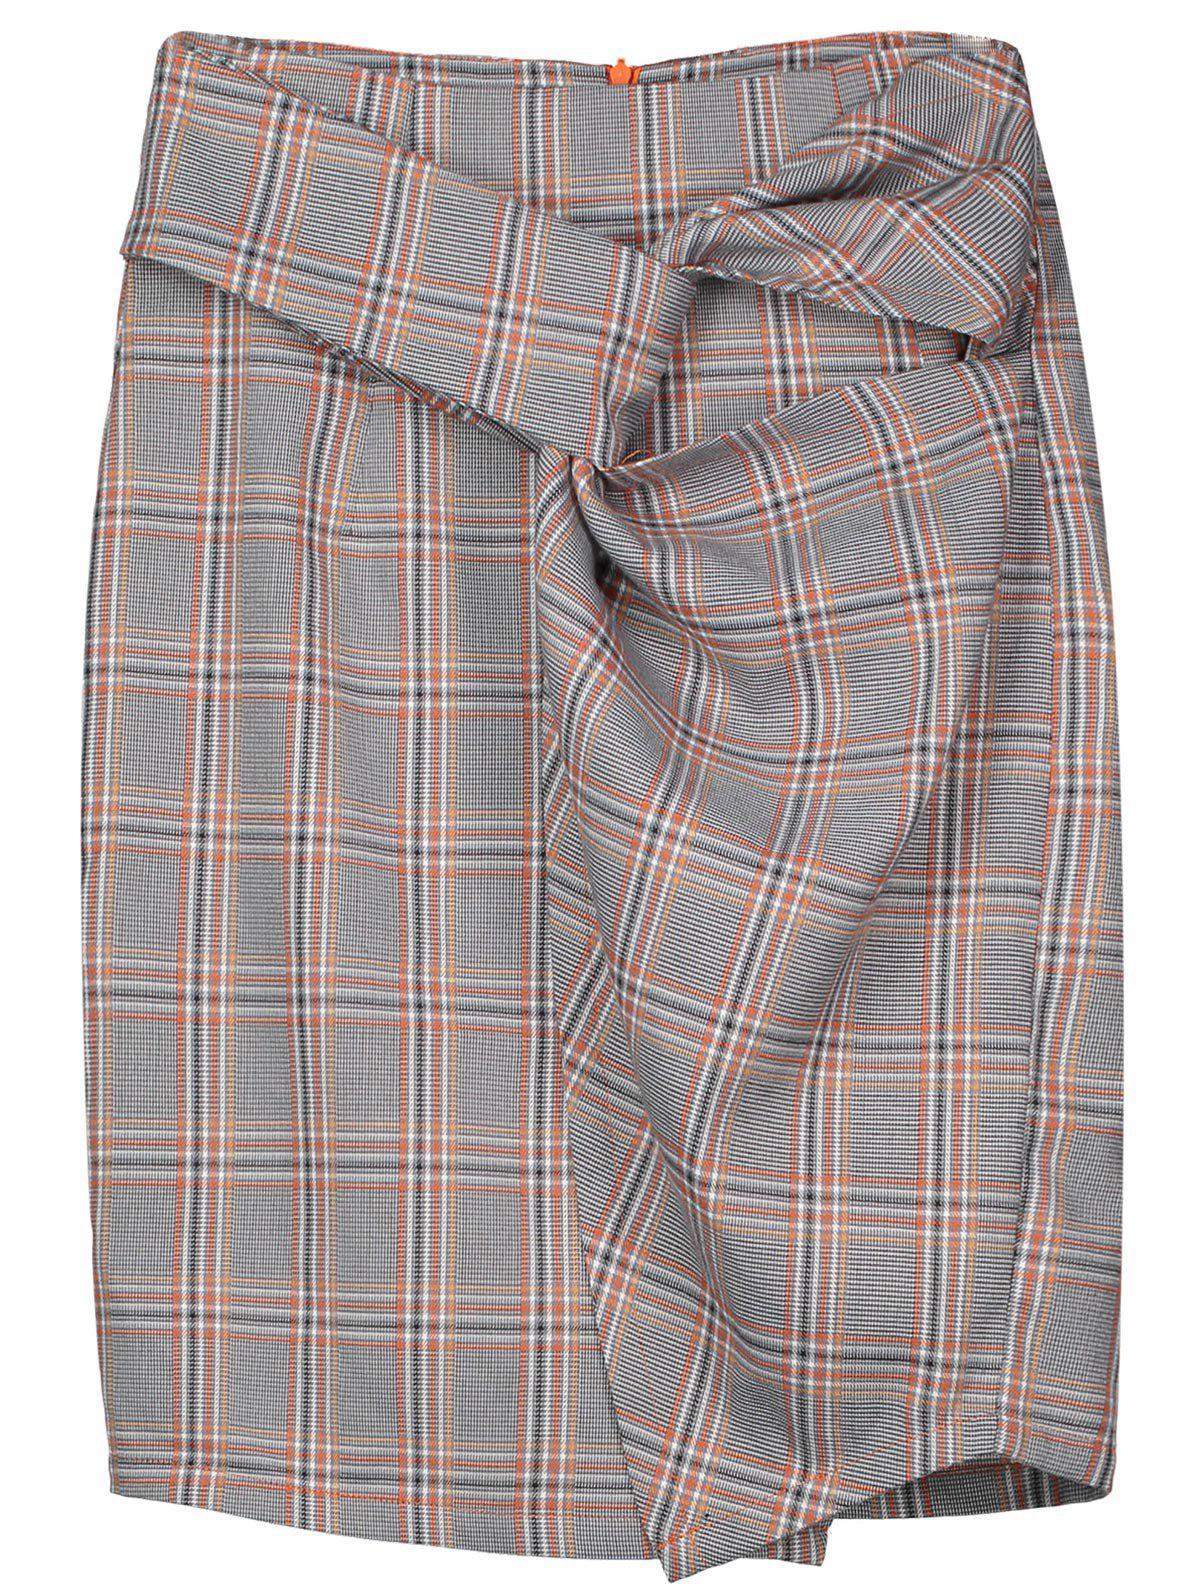 Twist Checked Pencil Skirt double breasted pencil skirt